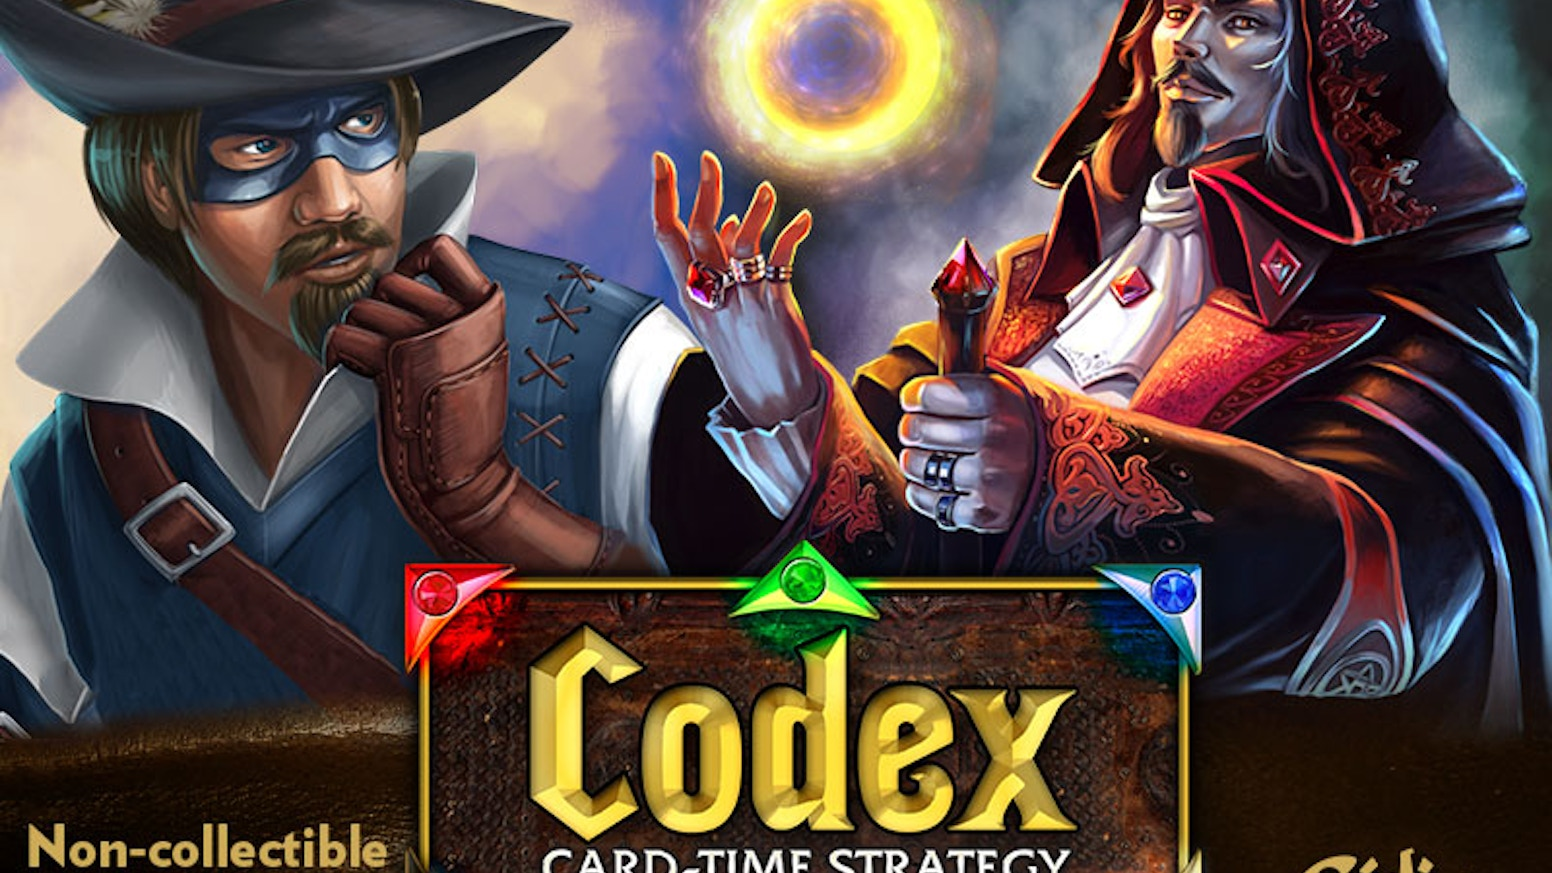 Codex is a customizable card game that does things differently from the rest. Based on real-time strategy video games.